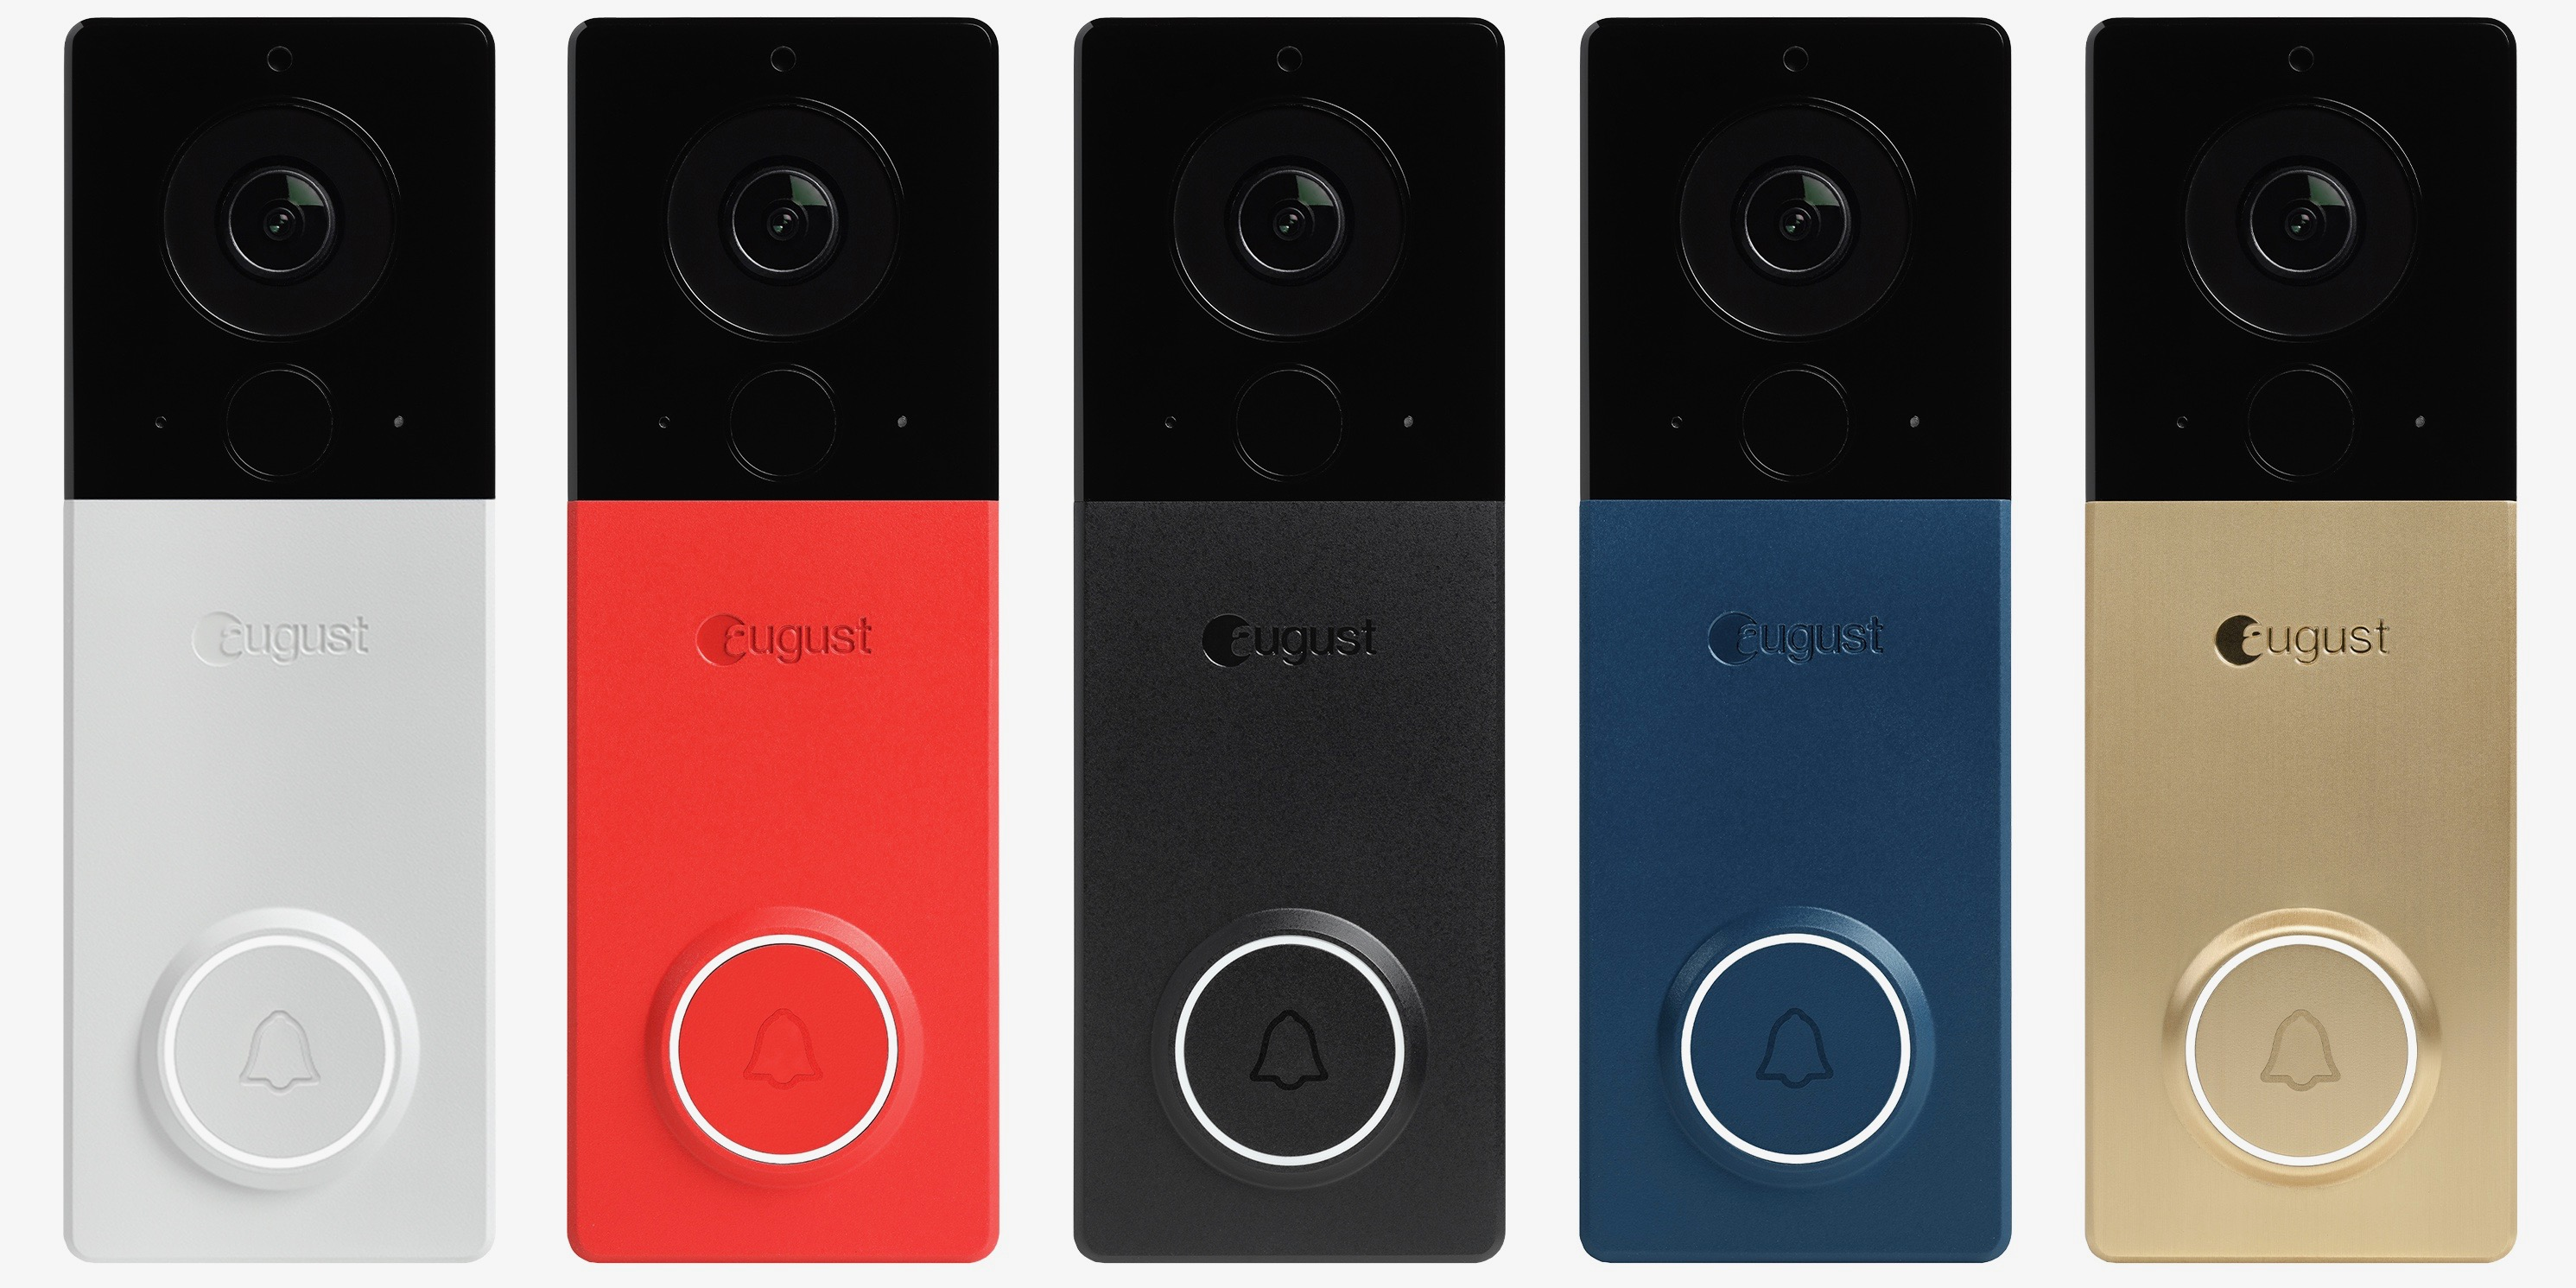 [Update: Now available for $230] August View wire-free video doorbell unveiled with swappable faceplates, rechargeable battery, more